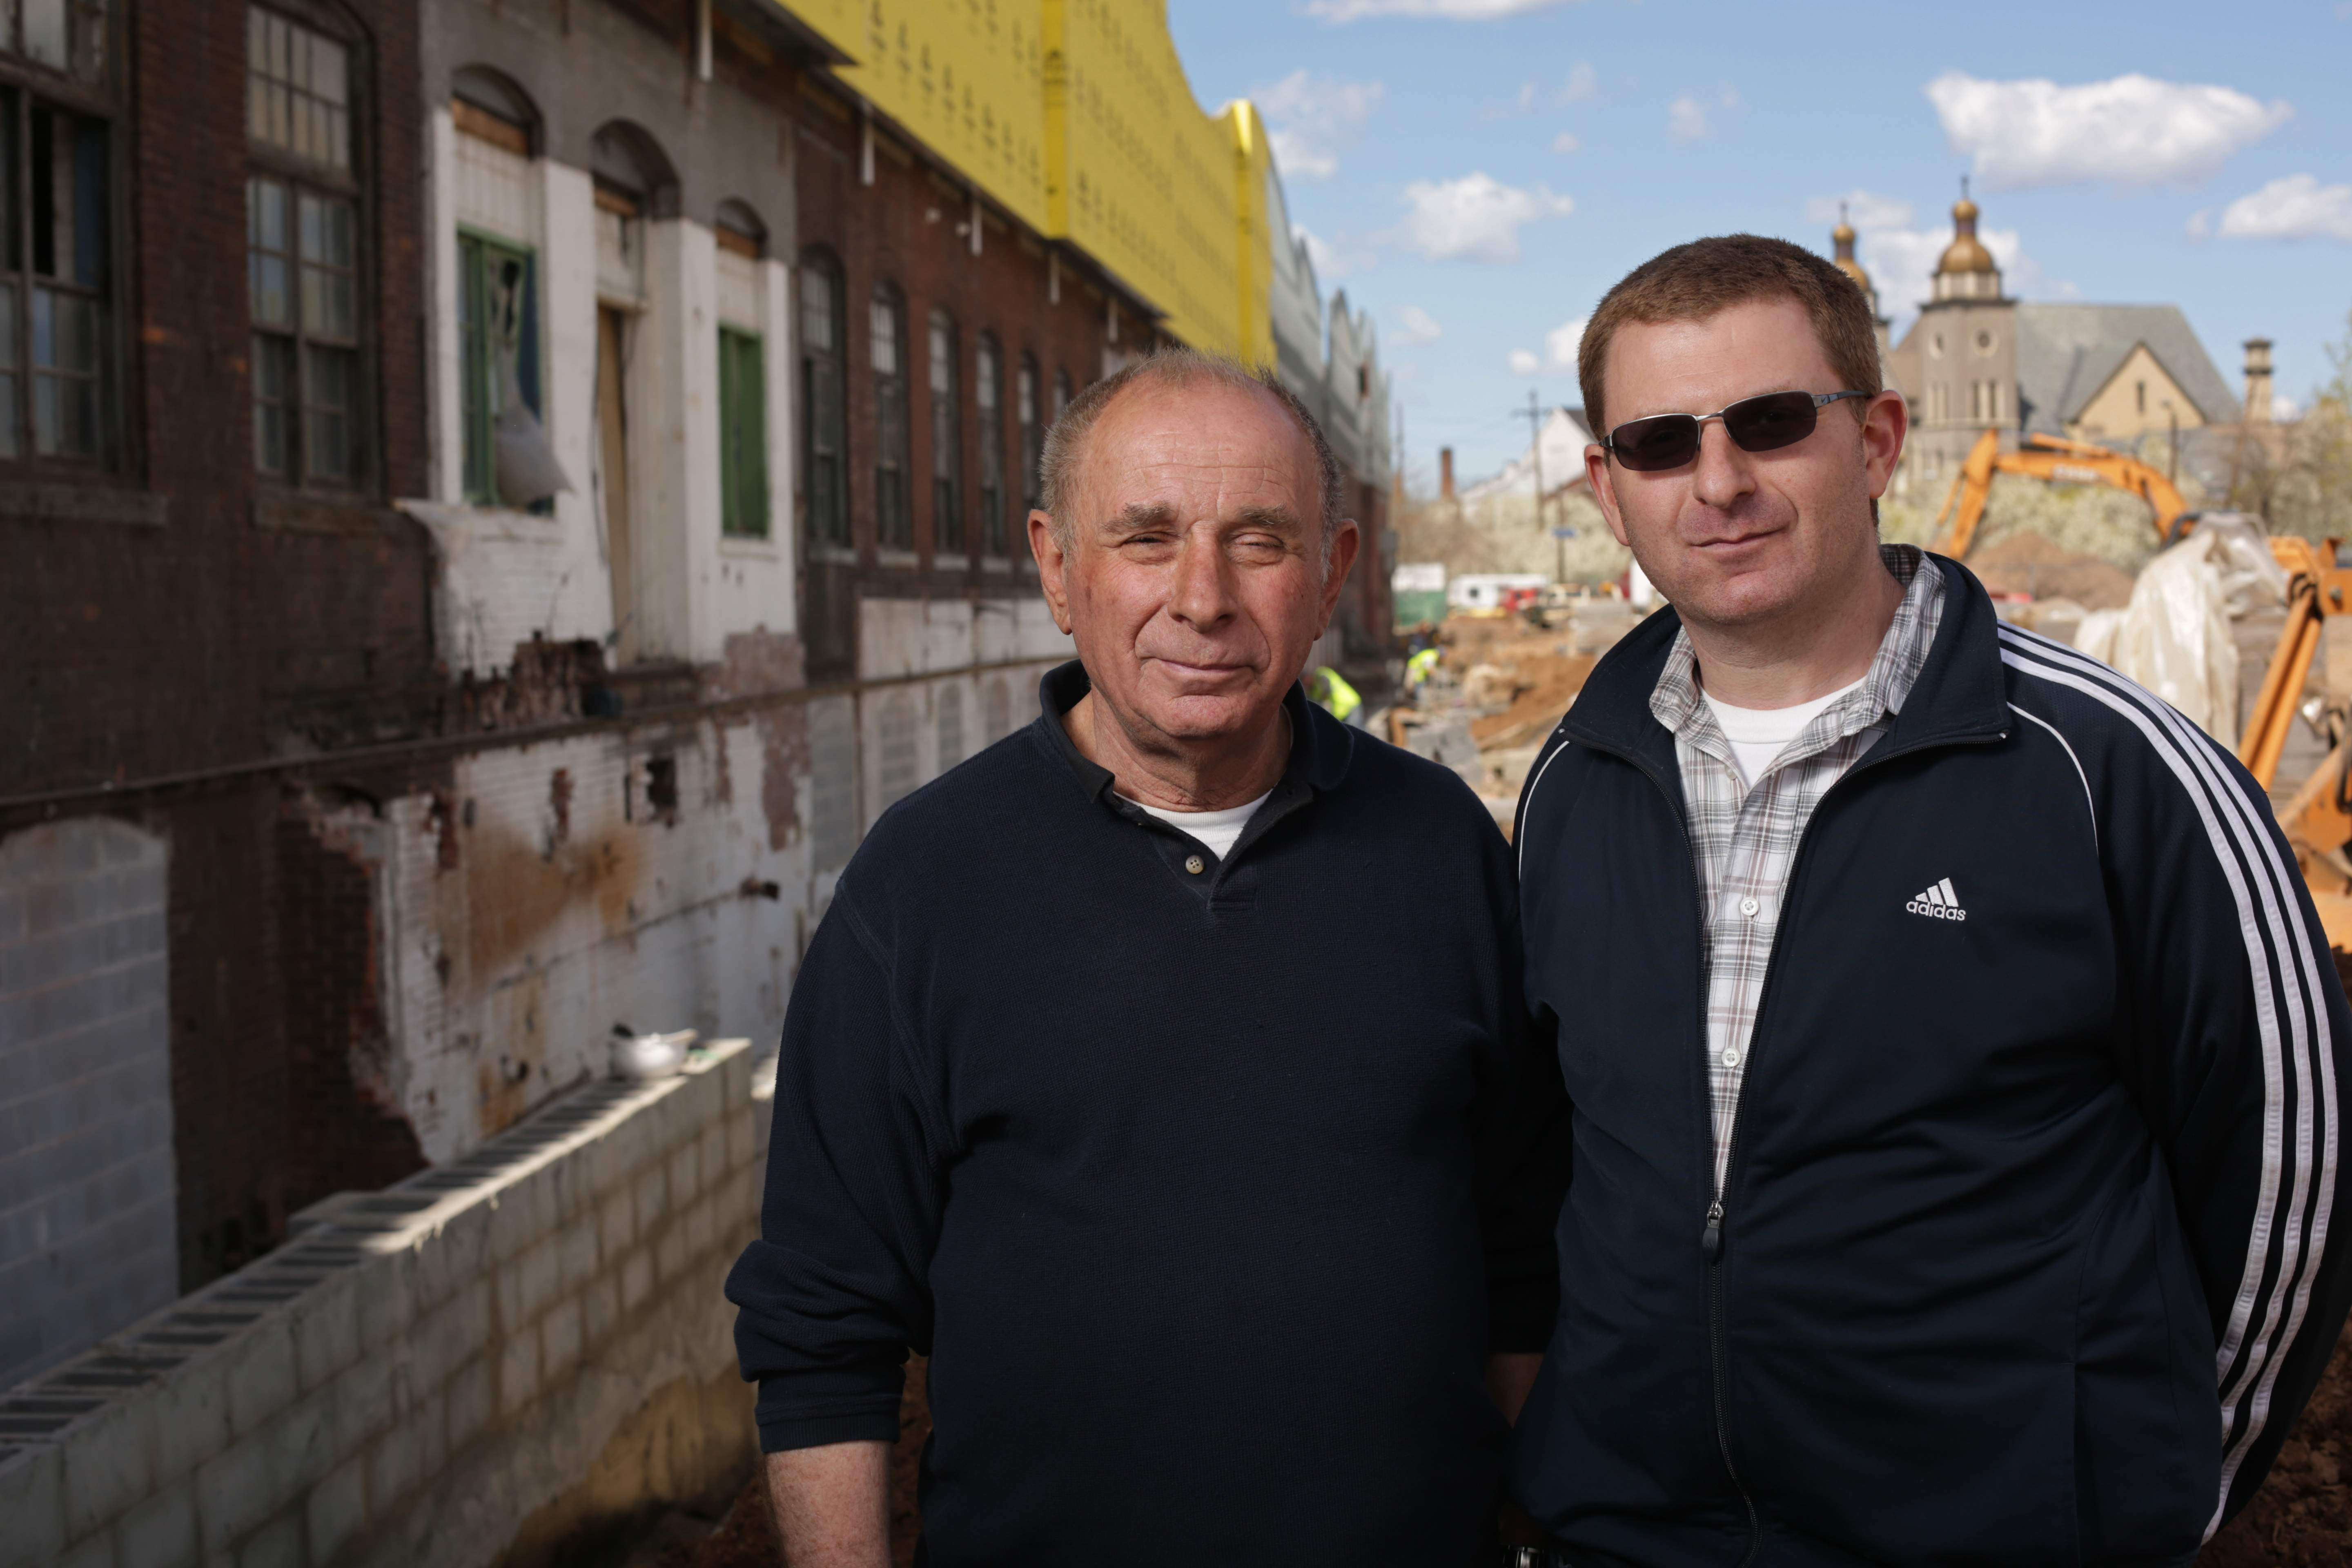 Shimon Einhorn and his son Shamir Einhorn, co-directors of Contempo Space in Passaic.  The two are pictured in front of the future Contempo Plaza.